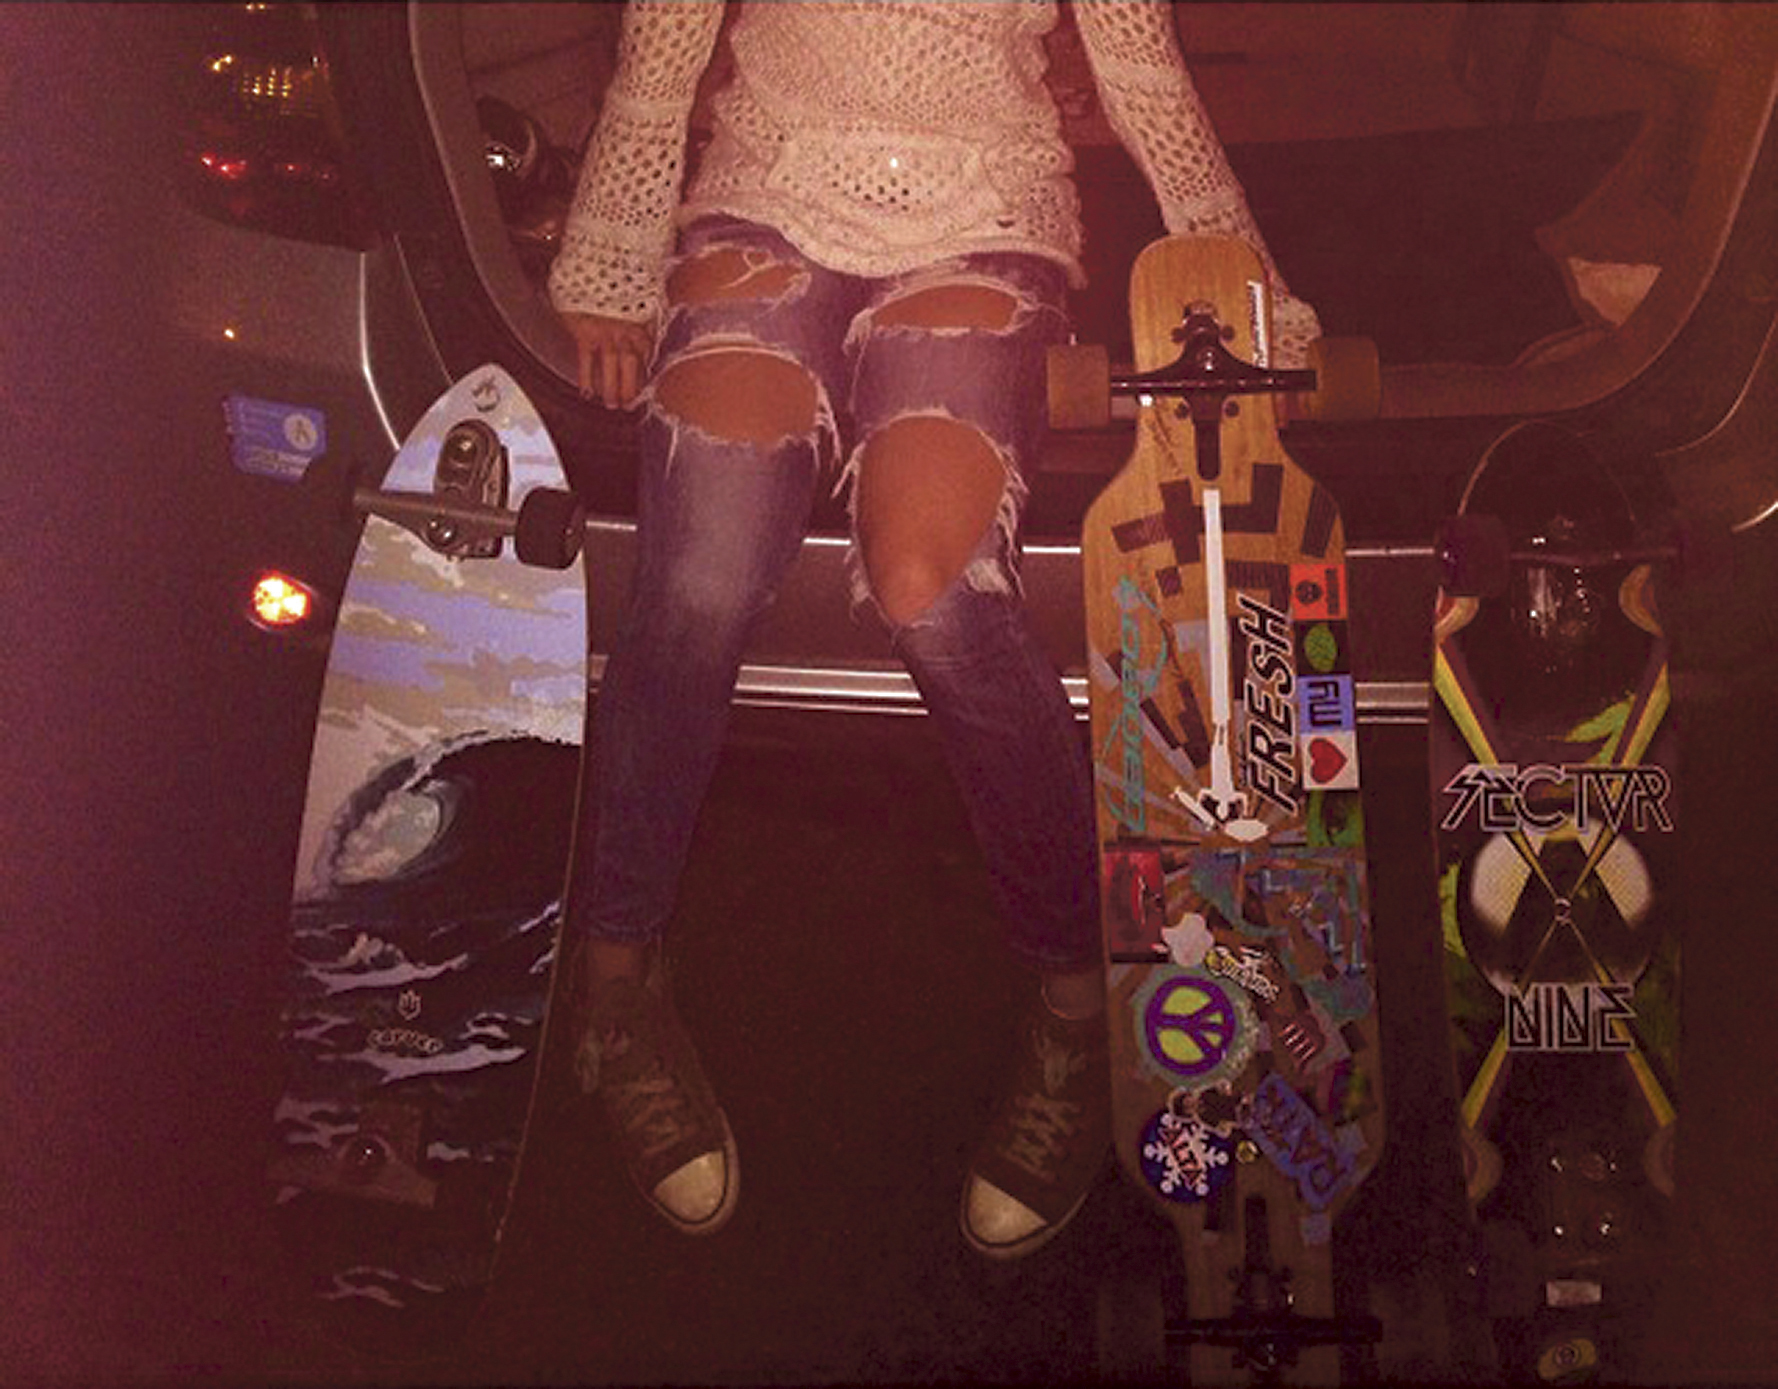 Longboards are popular with the millennial generation. Photo courtesy of Jeff Hessler.